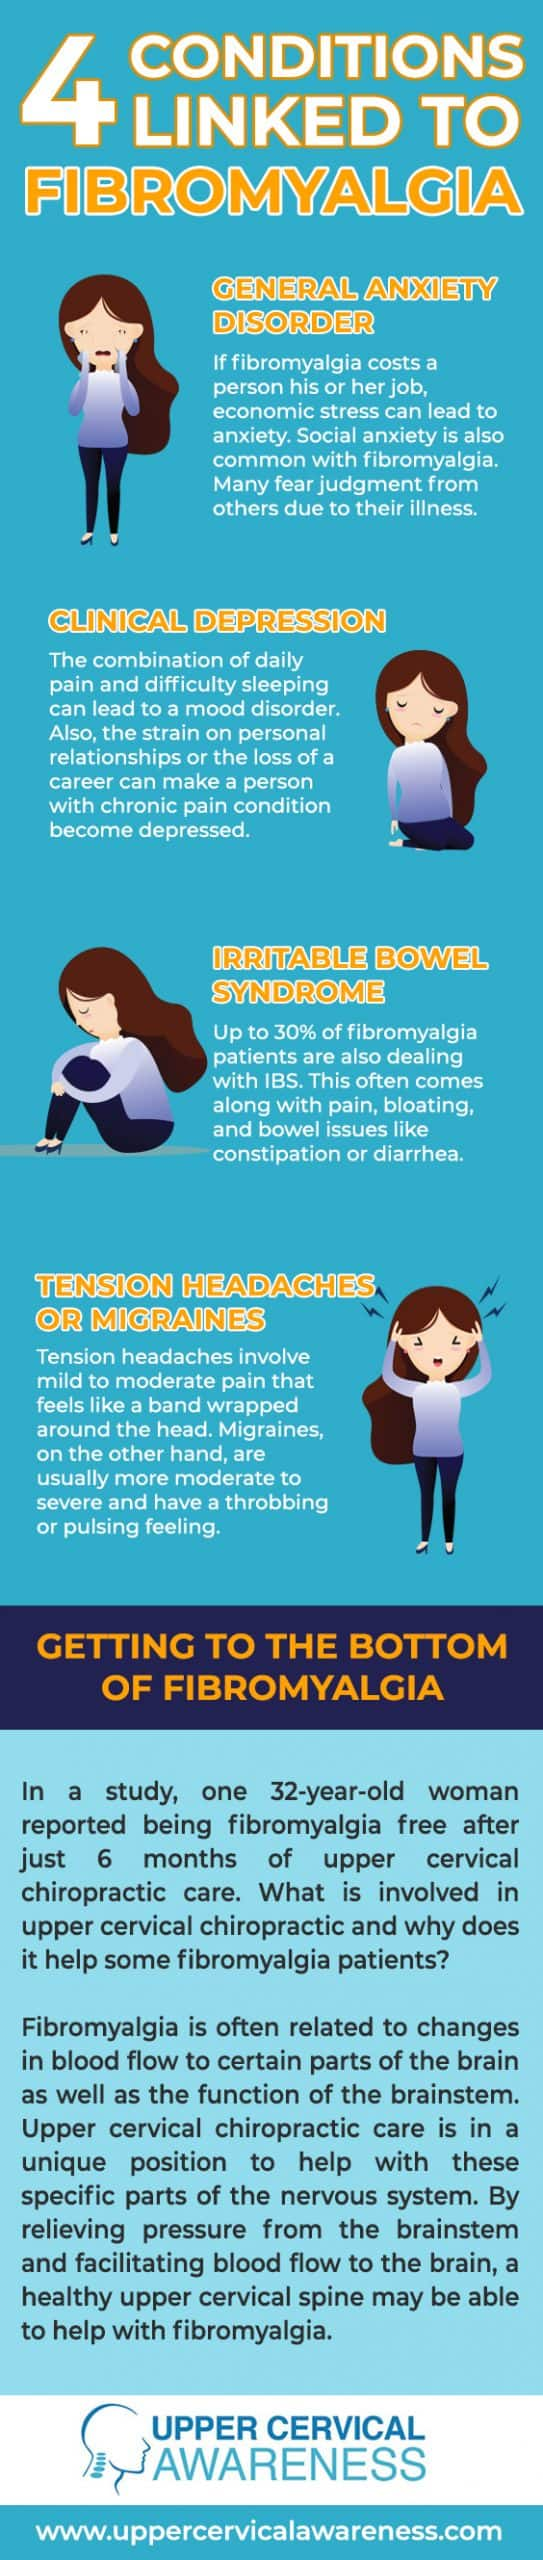 4 Devastating Associated Conditions Linked to Fibromyalgia